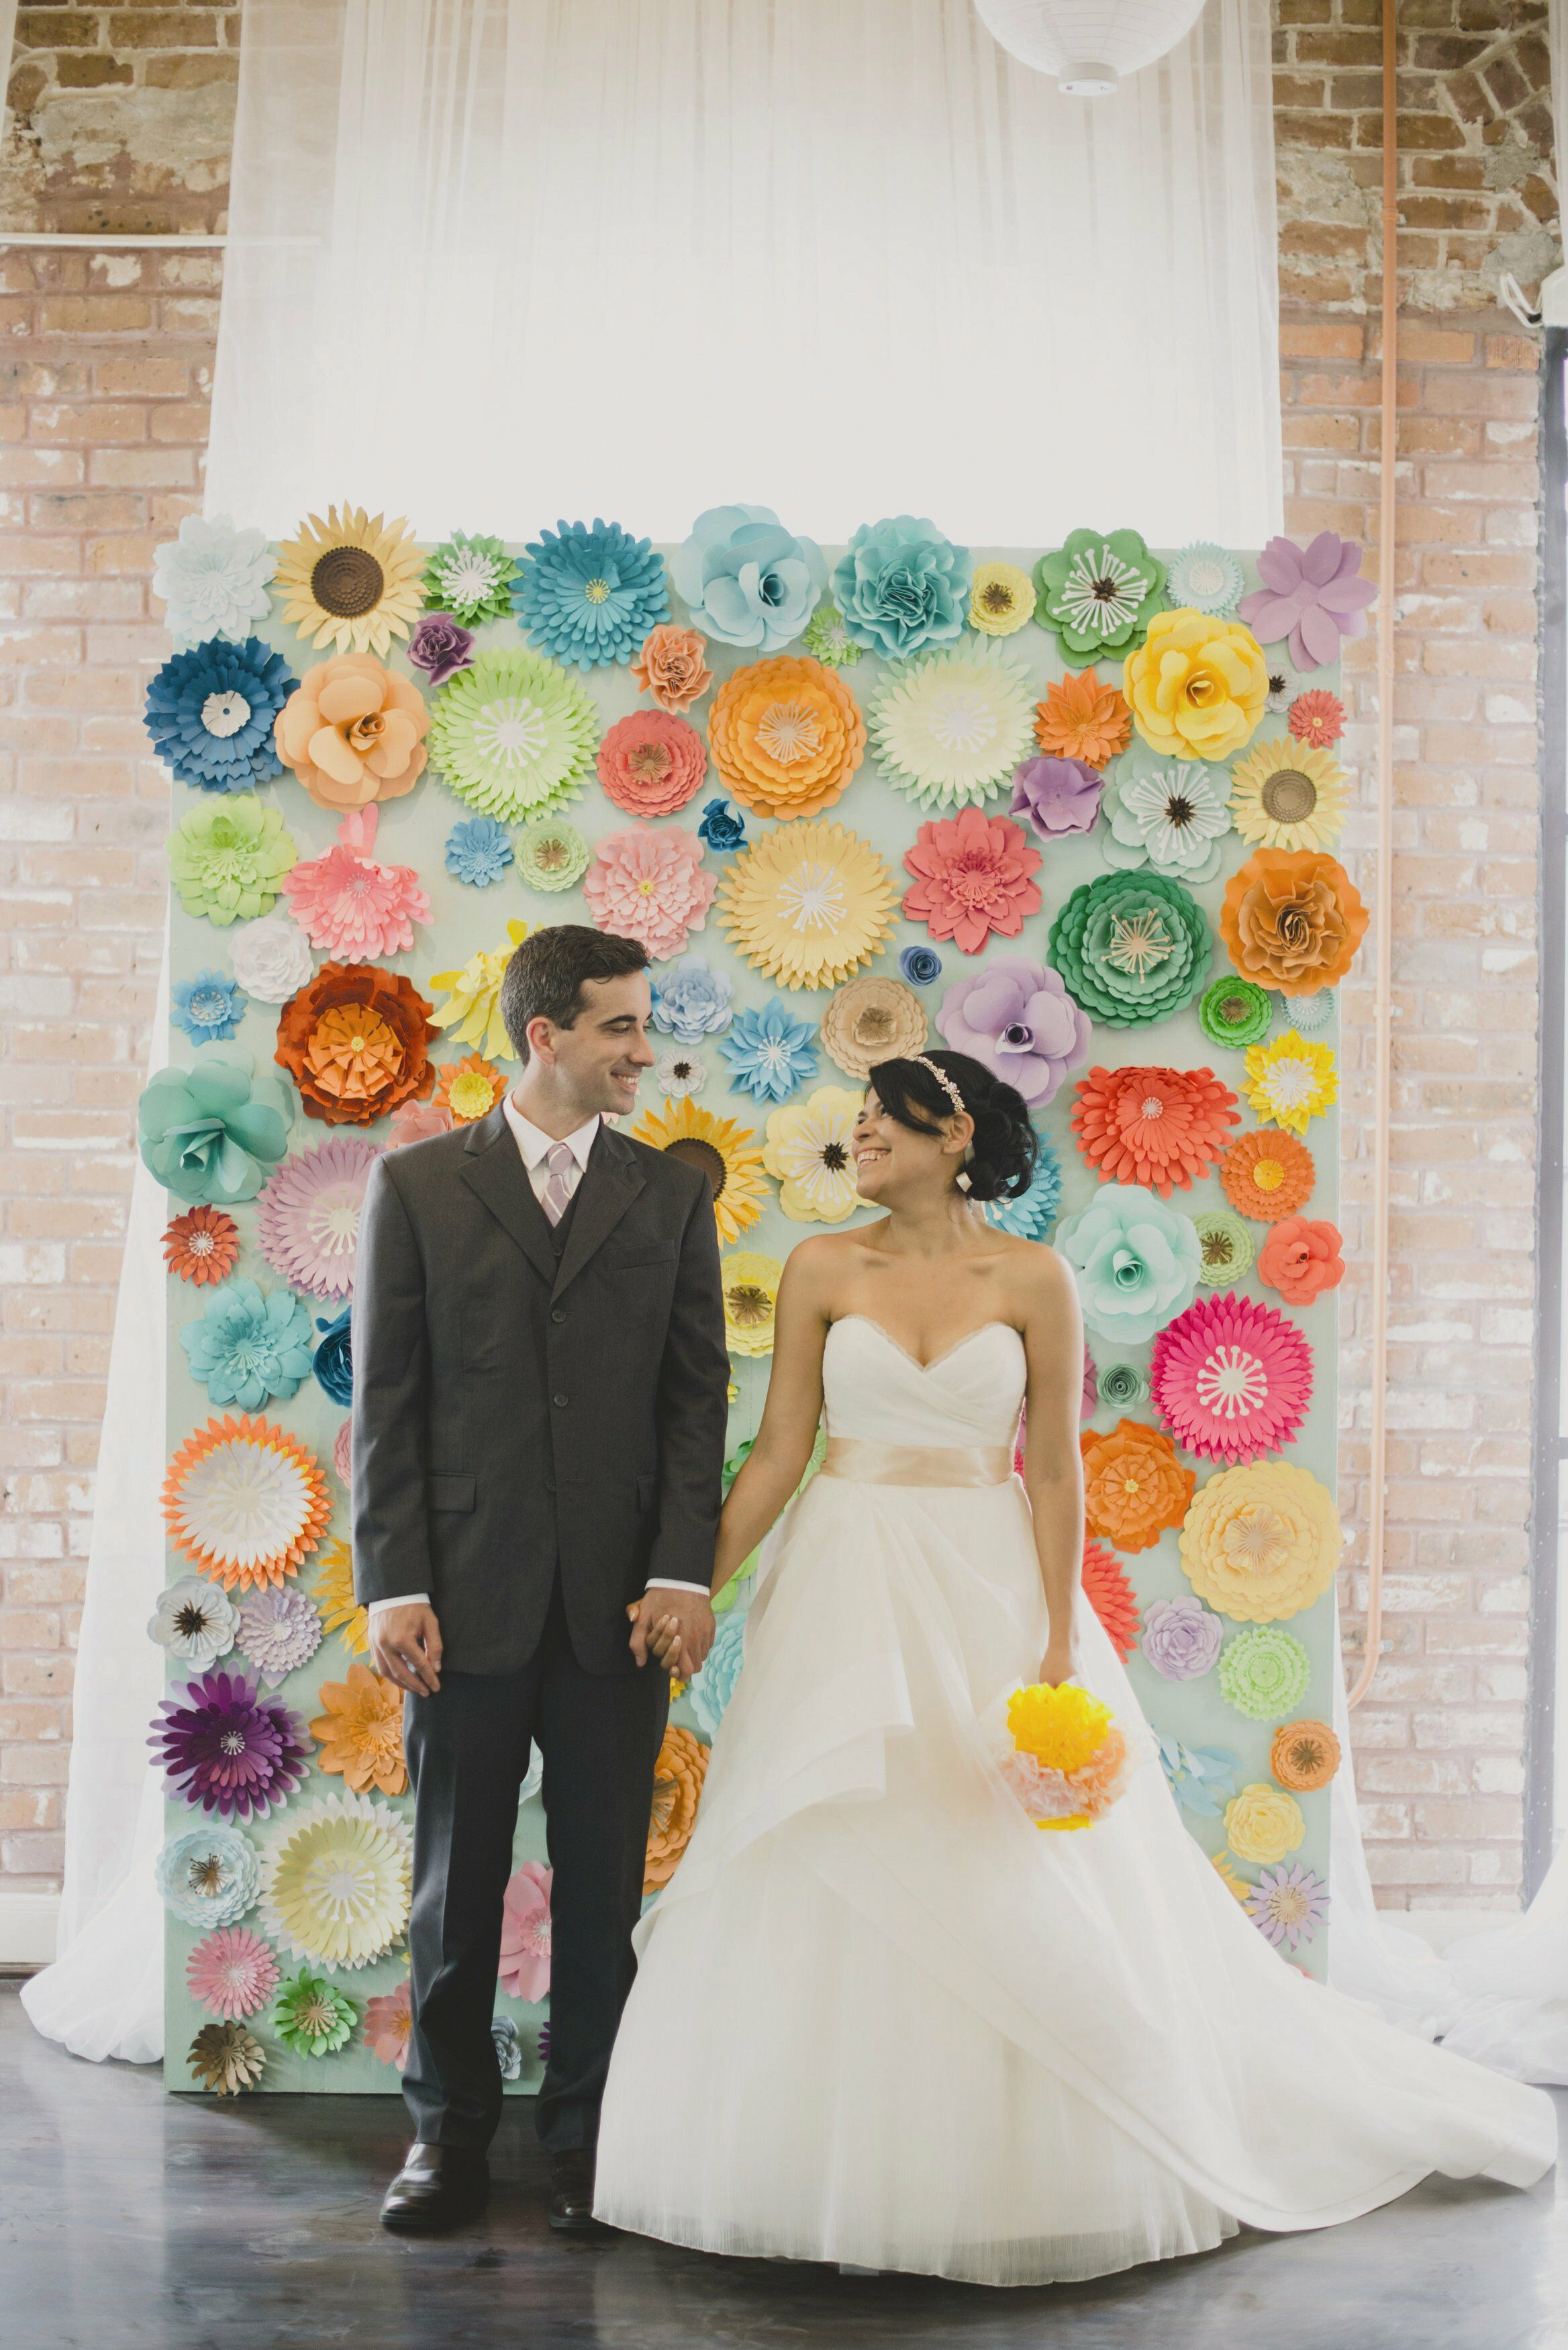 A Colorful Whimsical Wedding At Station 3 In Houston Texas